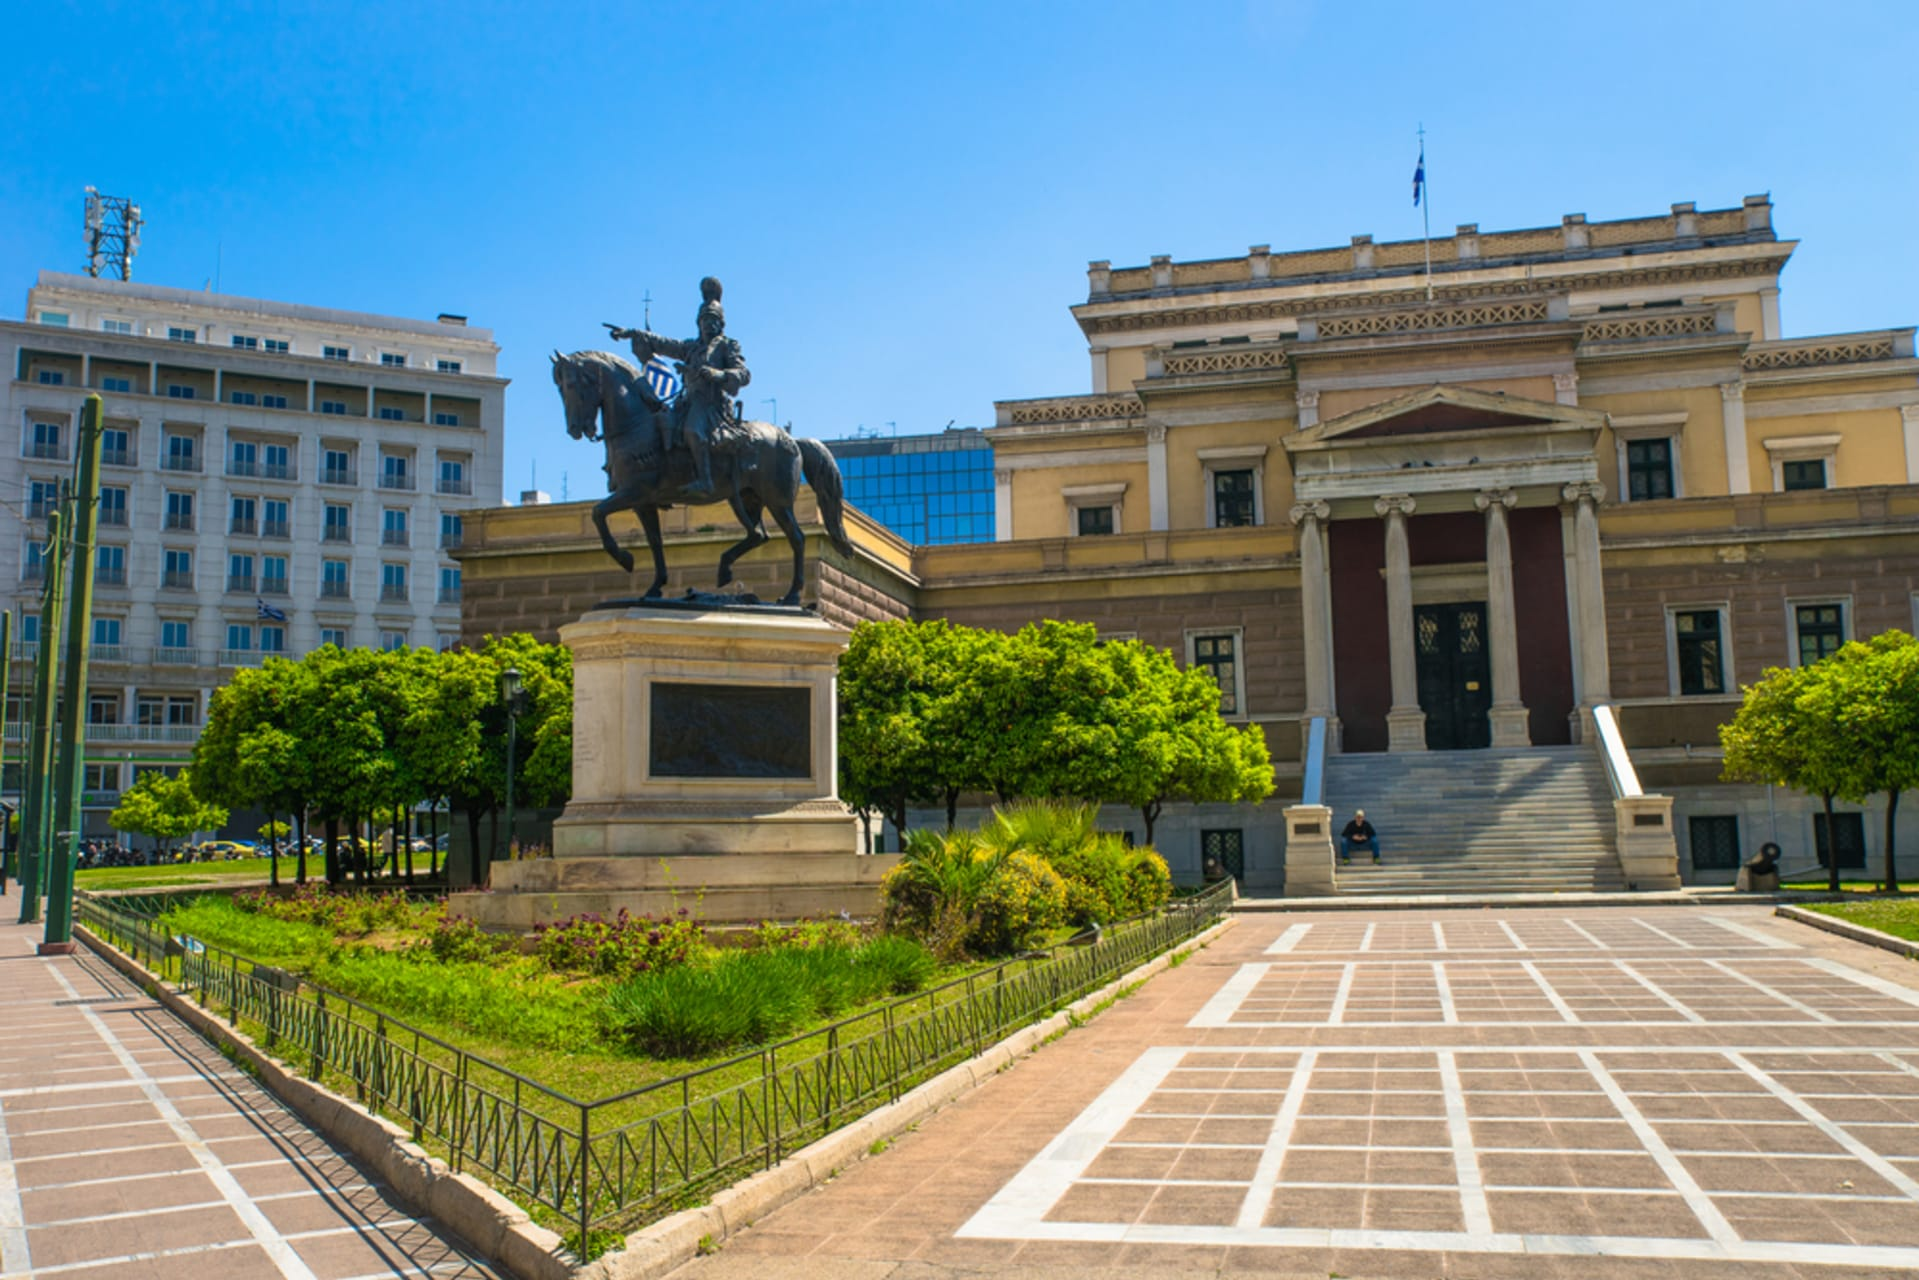 Athens - Syntagma Square: Athens' modern history at its very centre